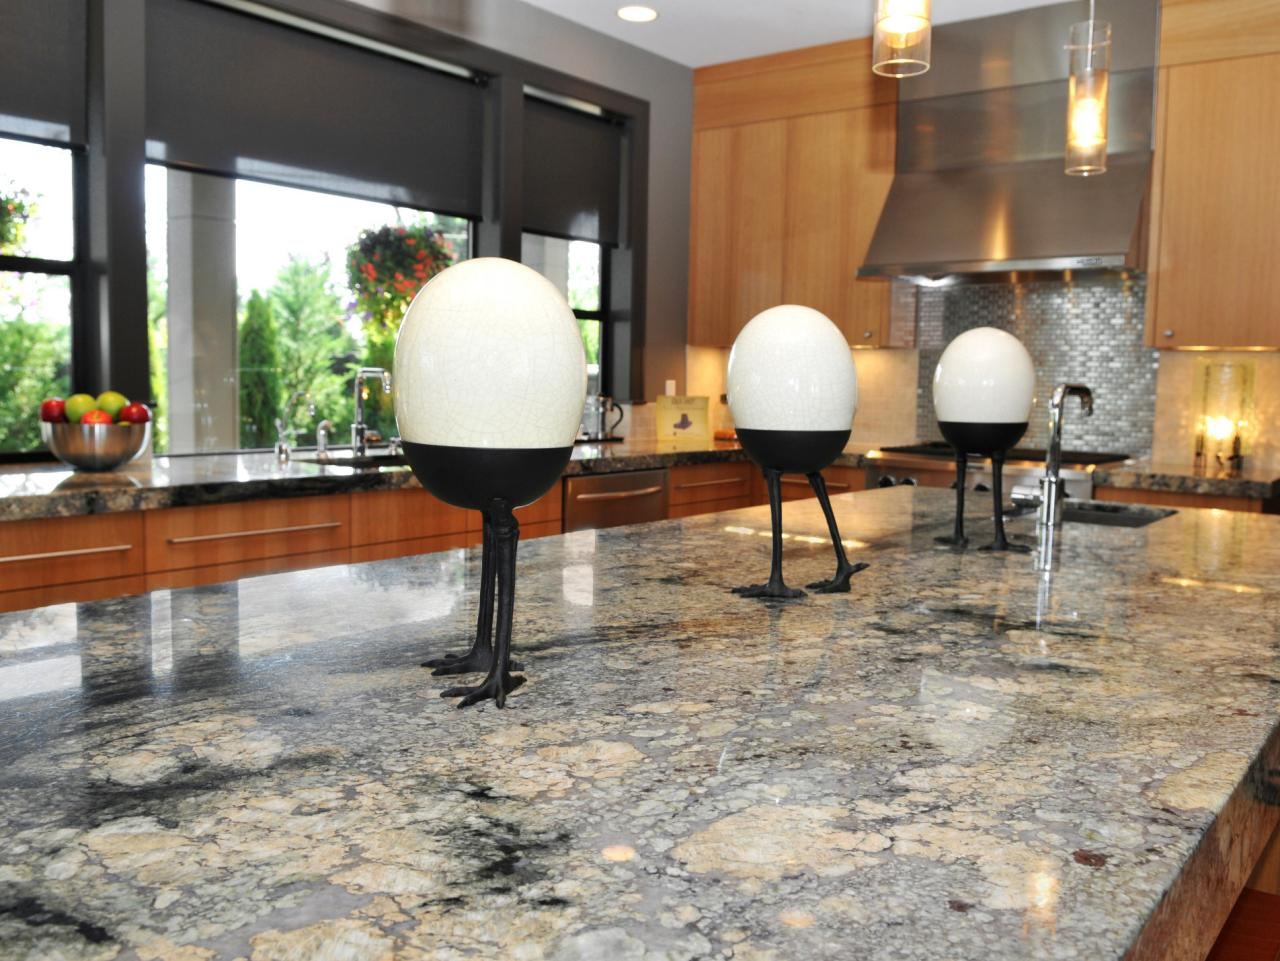 Granite countertops most popular favorite - Granite Kitchen Islands